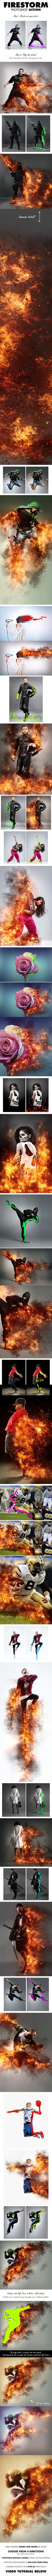 FireStorm Photoshop Action (Photo Effect) Download **HERE***: https://graphicriver.net/item/firestorm-photoshop-action/13392199?ref=KlitVogli